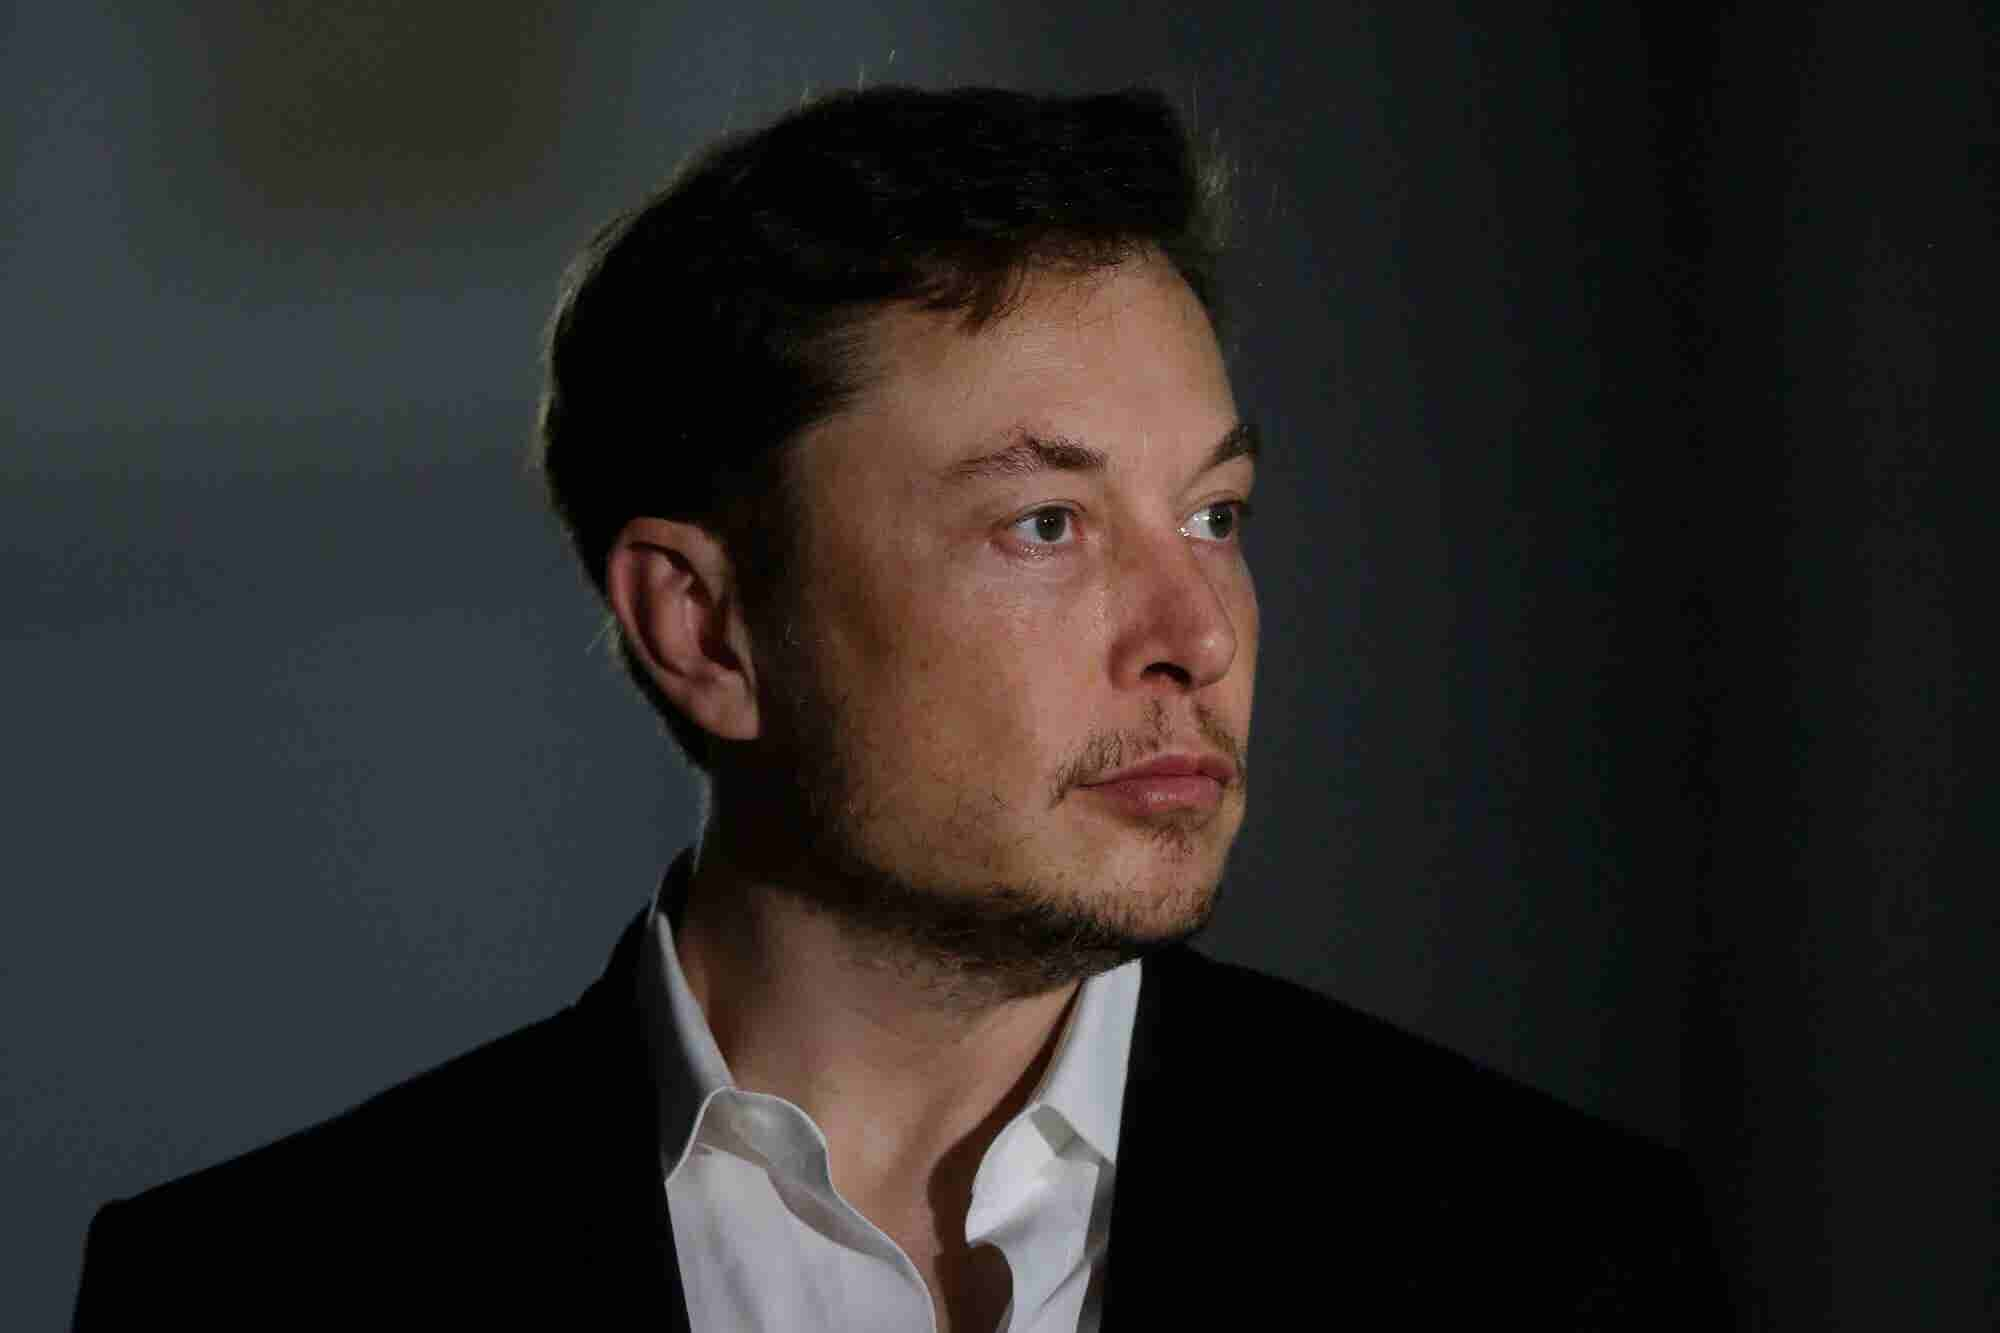 Tesla Staff Were Reportedly Told Not to Walk Past Elon Musk's Desk Bec...